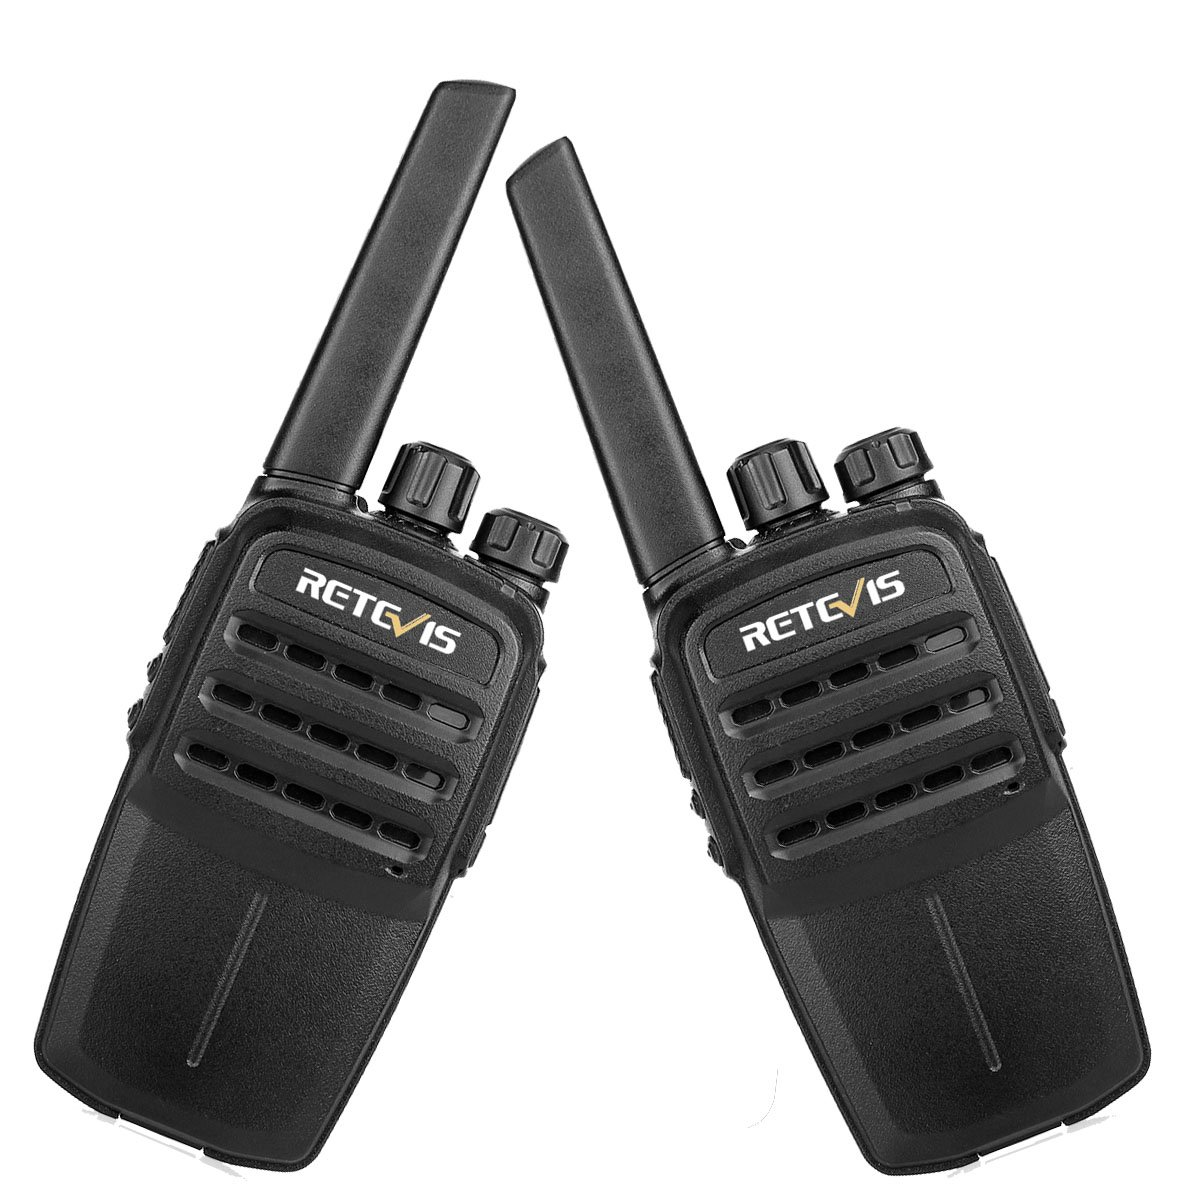 Retevis RT40 FRS Digital Walkie Talkie 48 CH Licence-free Two way Radio (Black,2 Pack) and programming cable